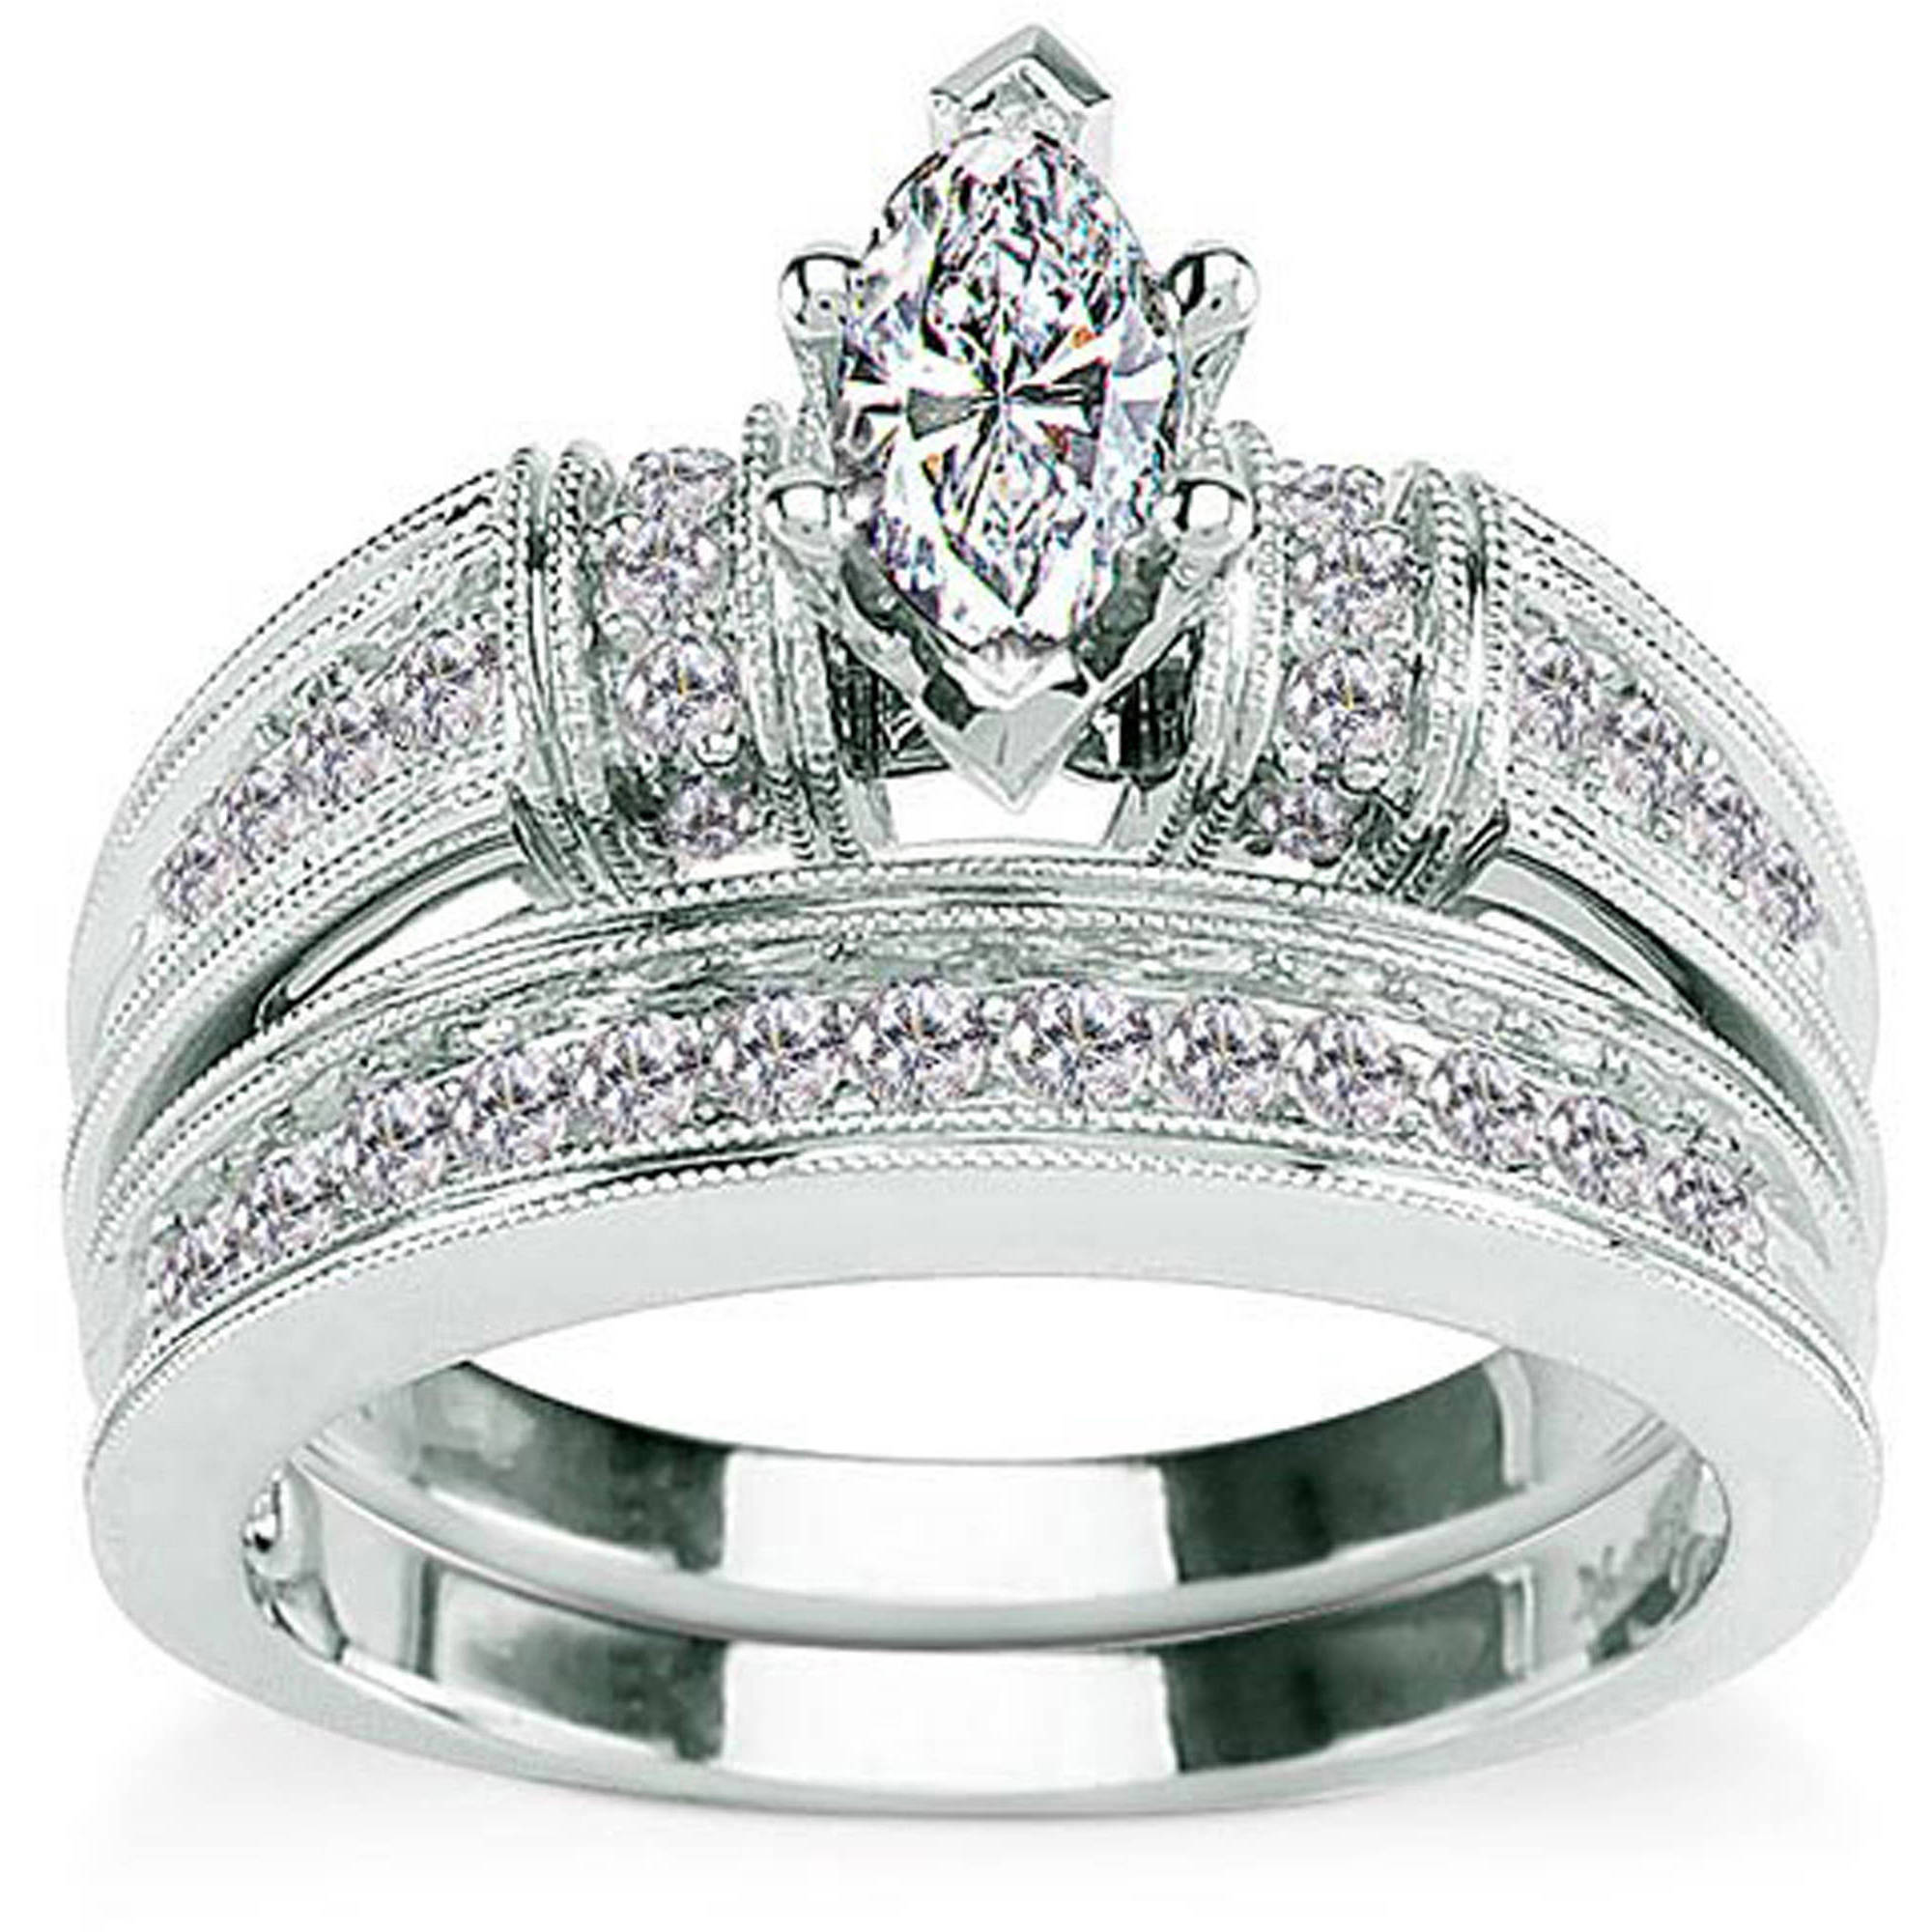 Miabella 5 3 5 Carat T G W Cubic Zirconia Engagement Ring in